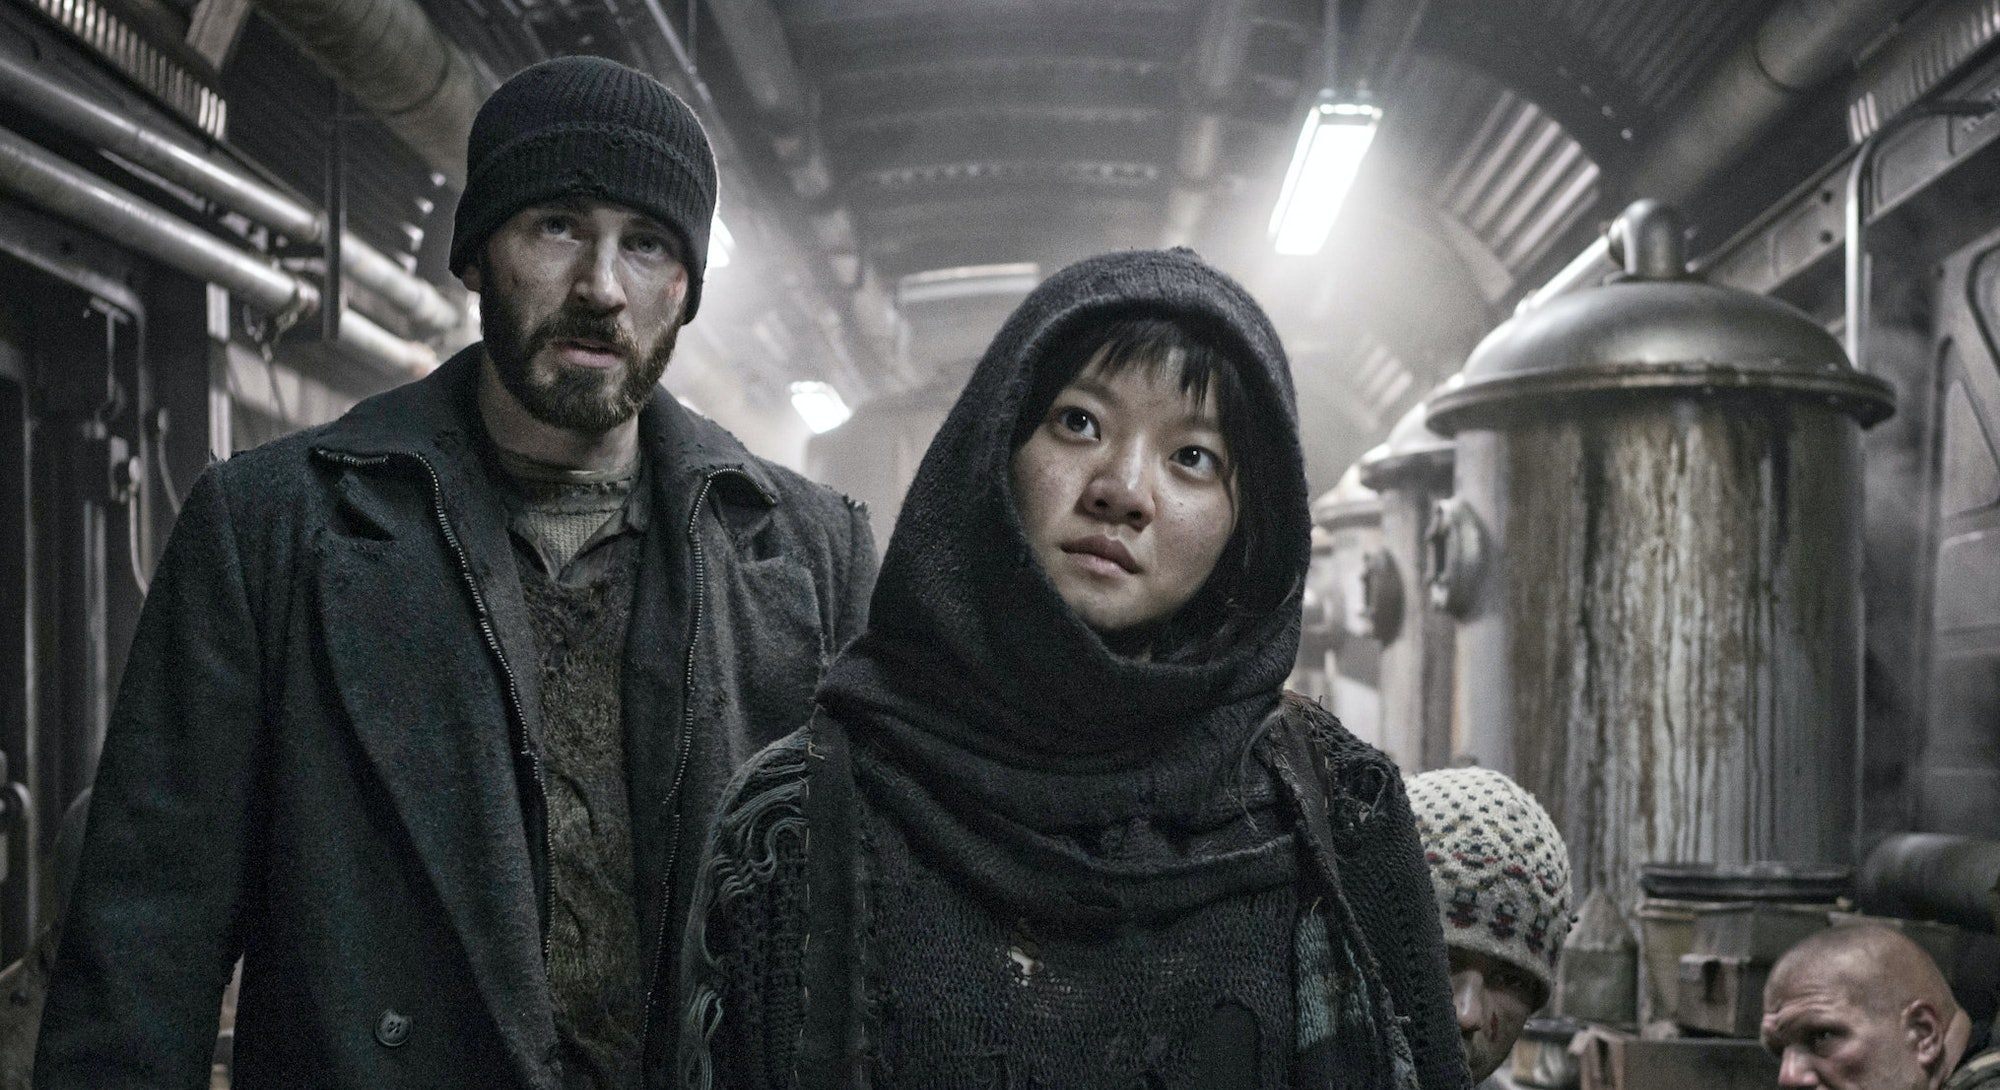 snowpiercer movie netflix january 2021